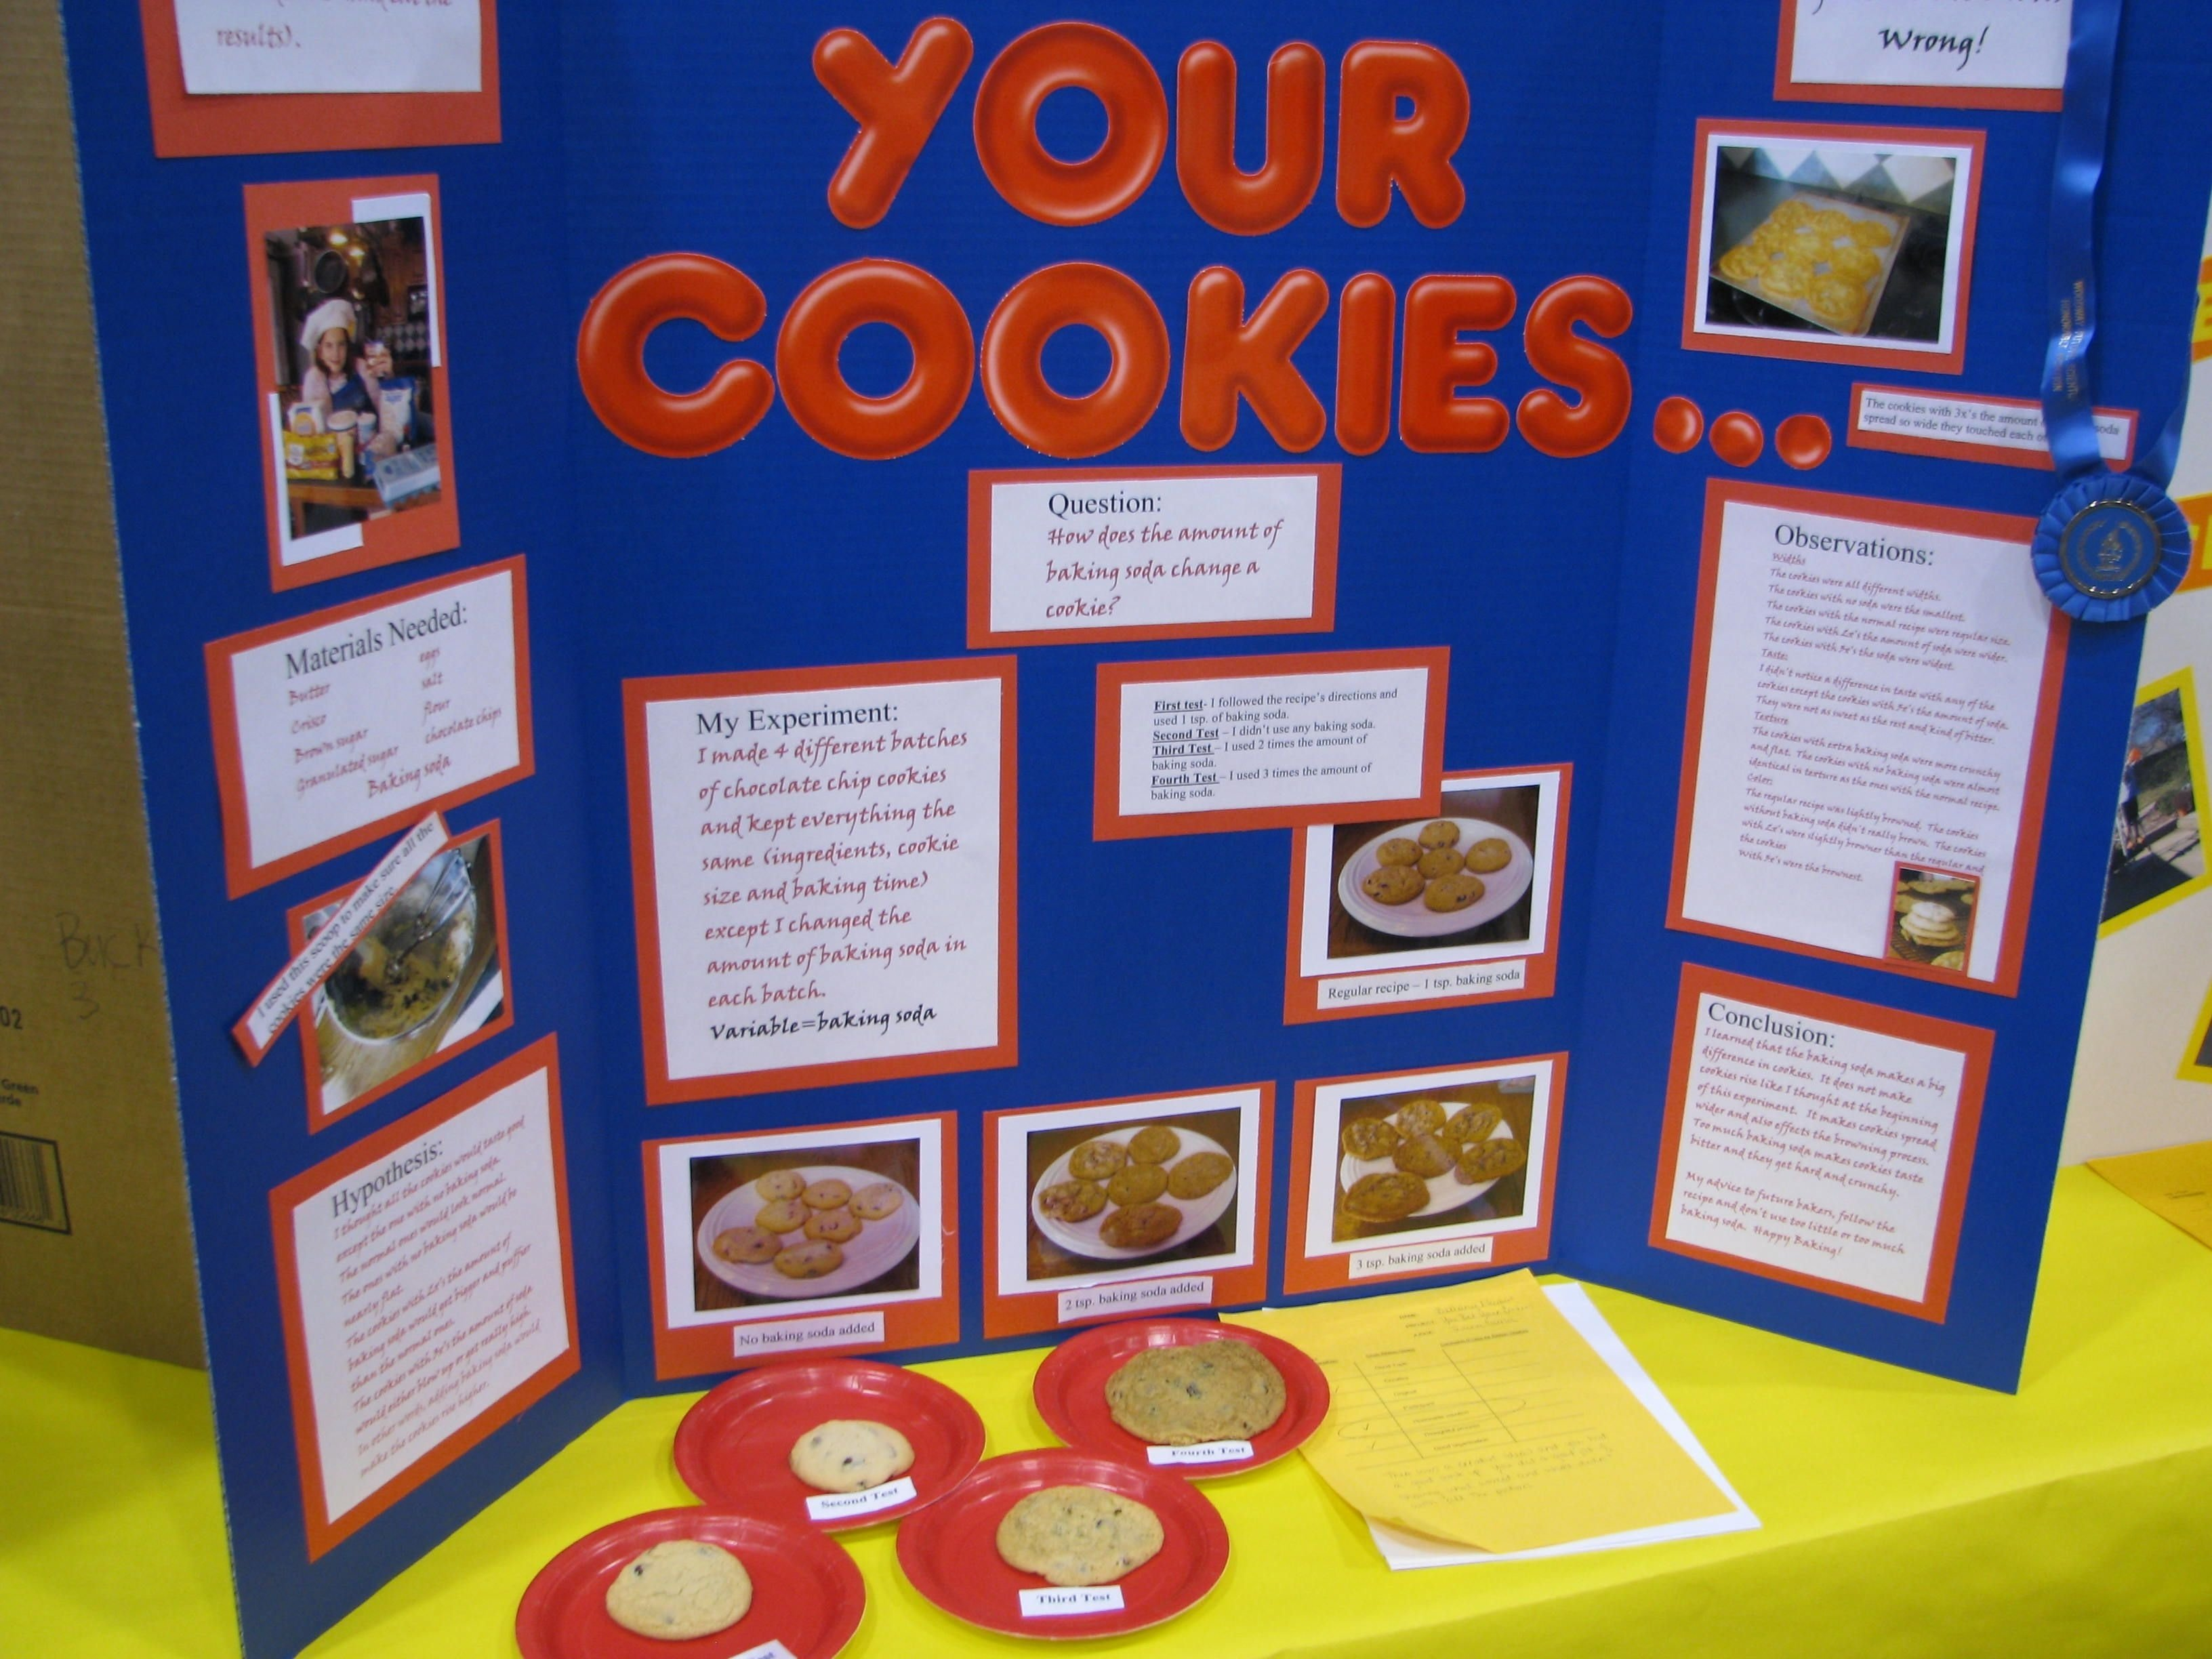 10 Pretty Elementary School Science Fair Project Ideas science fair information science fair fair projects and science 18 2020